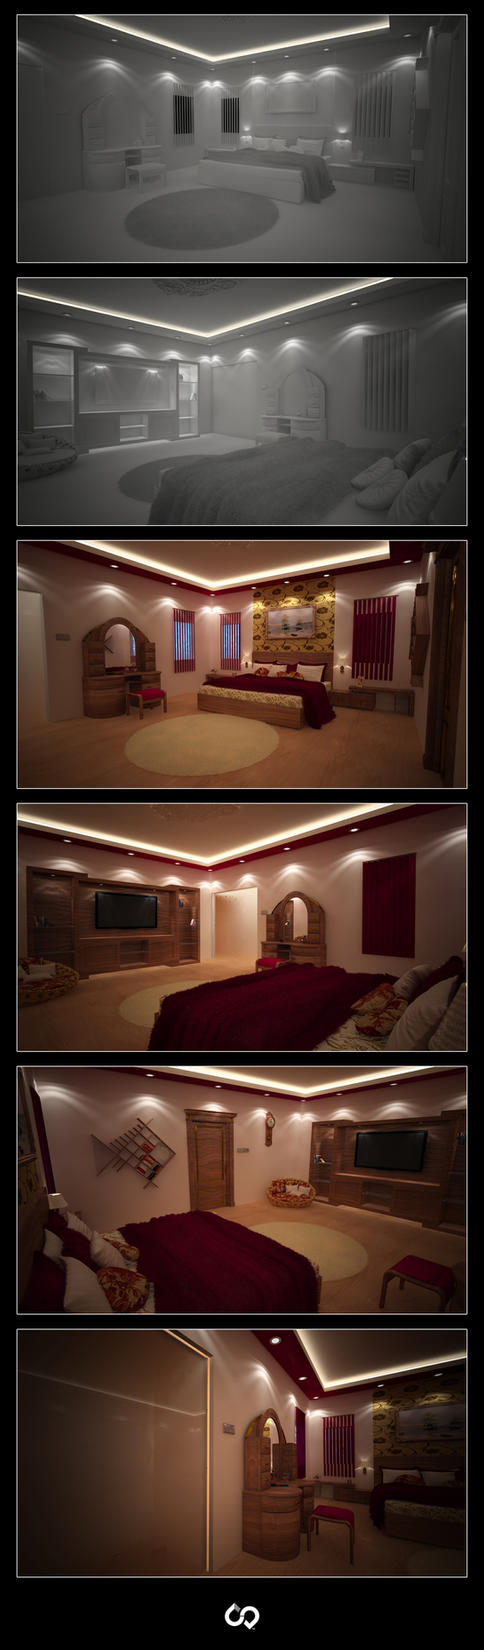 Bedroom Interior concept by CanorousDesign